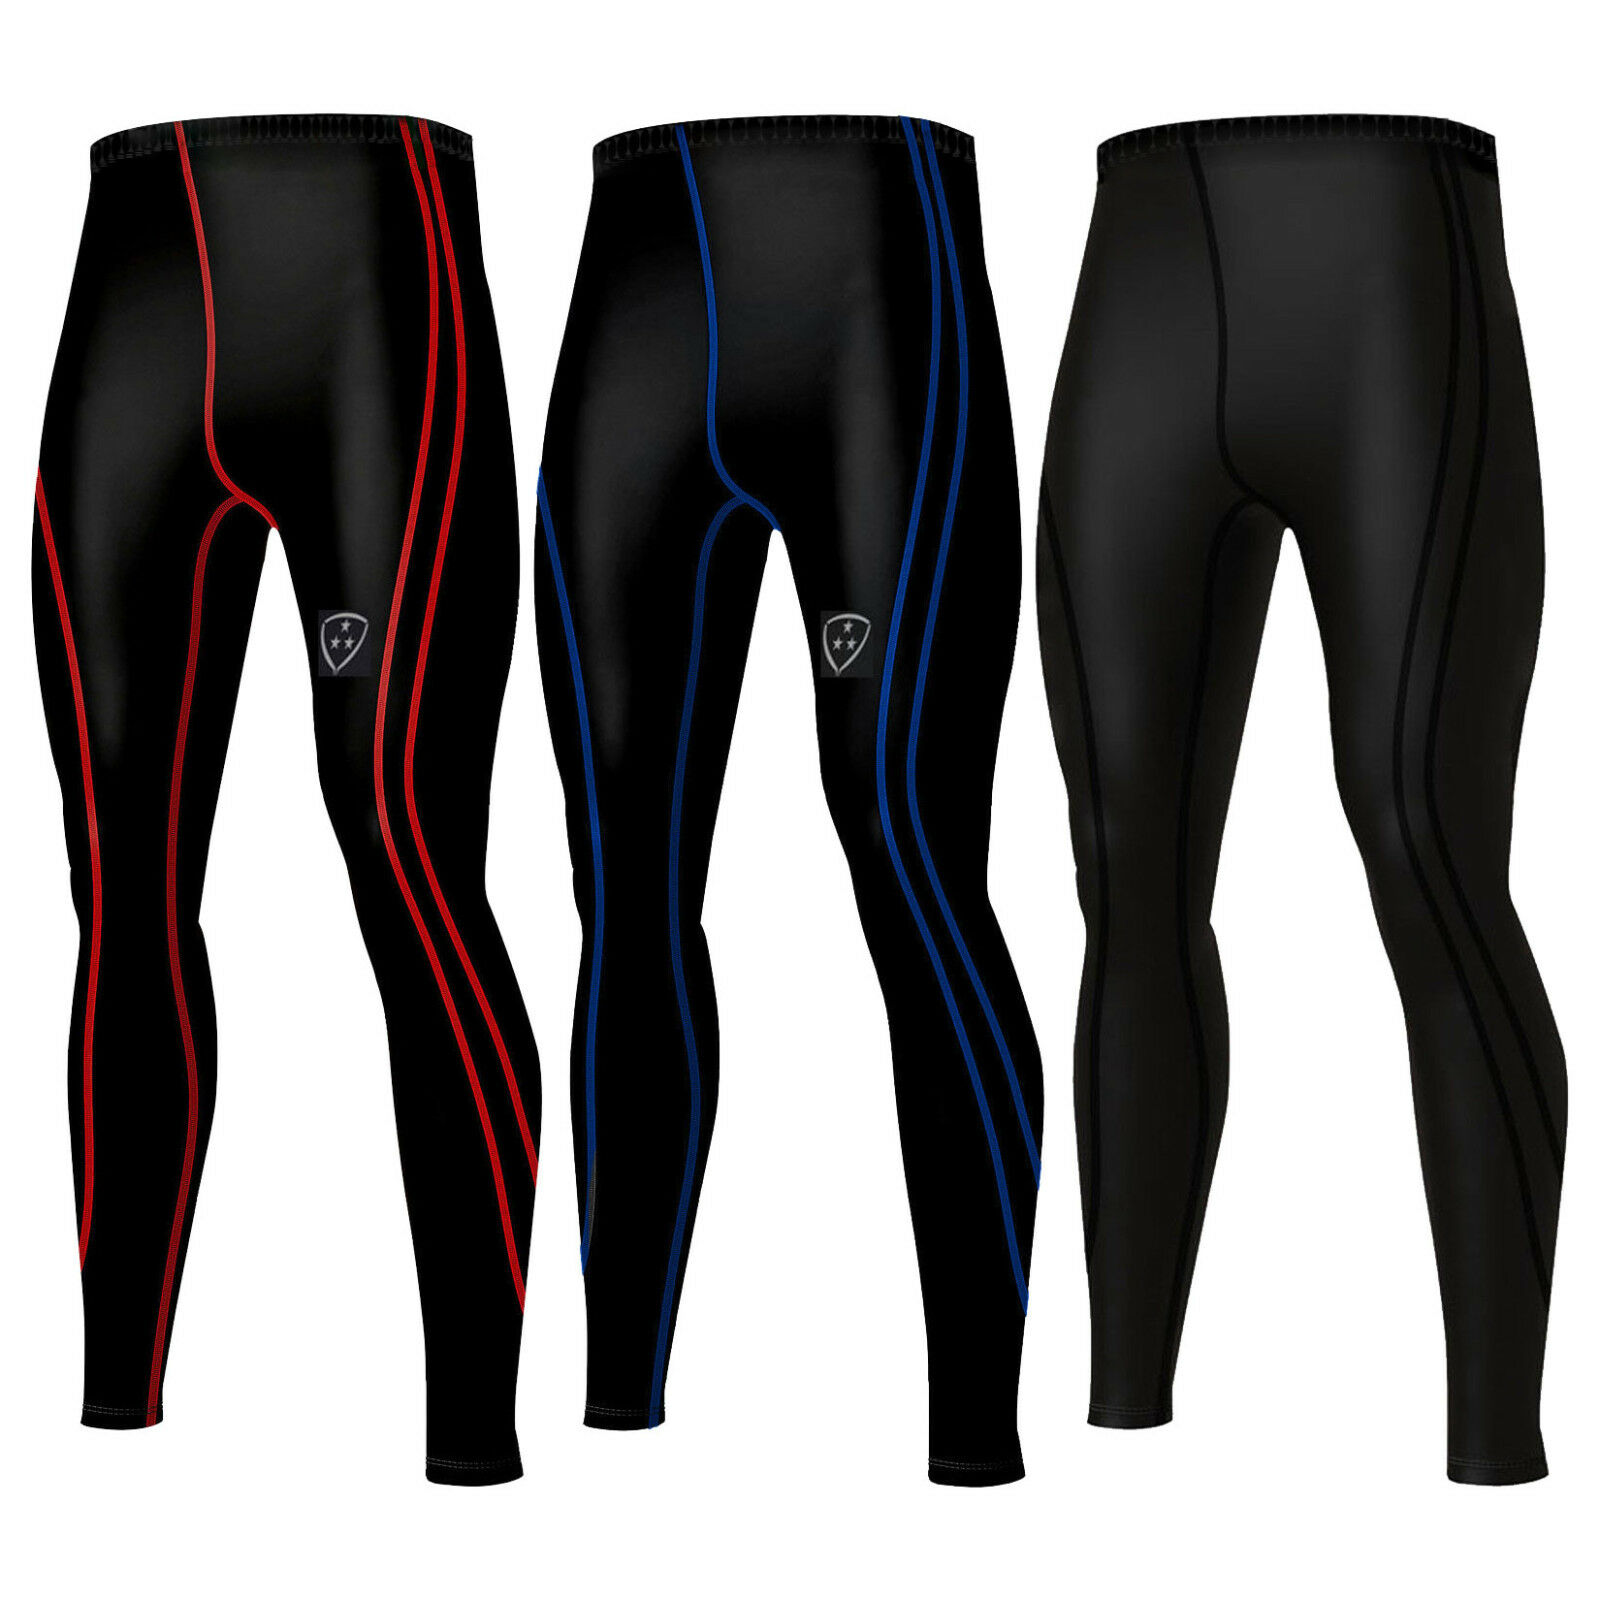 b4afc4bea25 Details about DHERA Men s Compression Base Layer Pants Leggings Running  Skin Tight Trousers